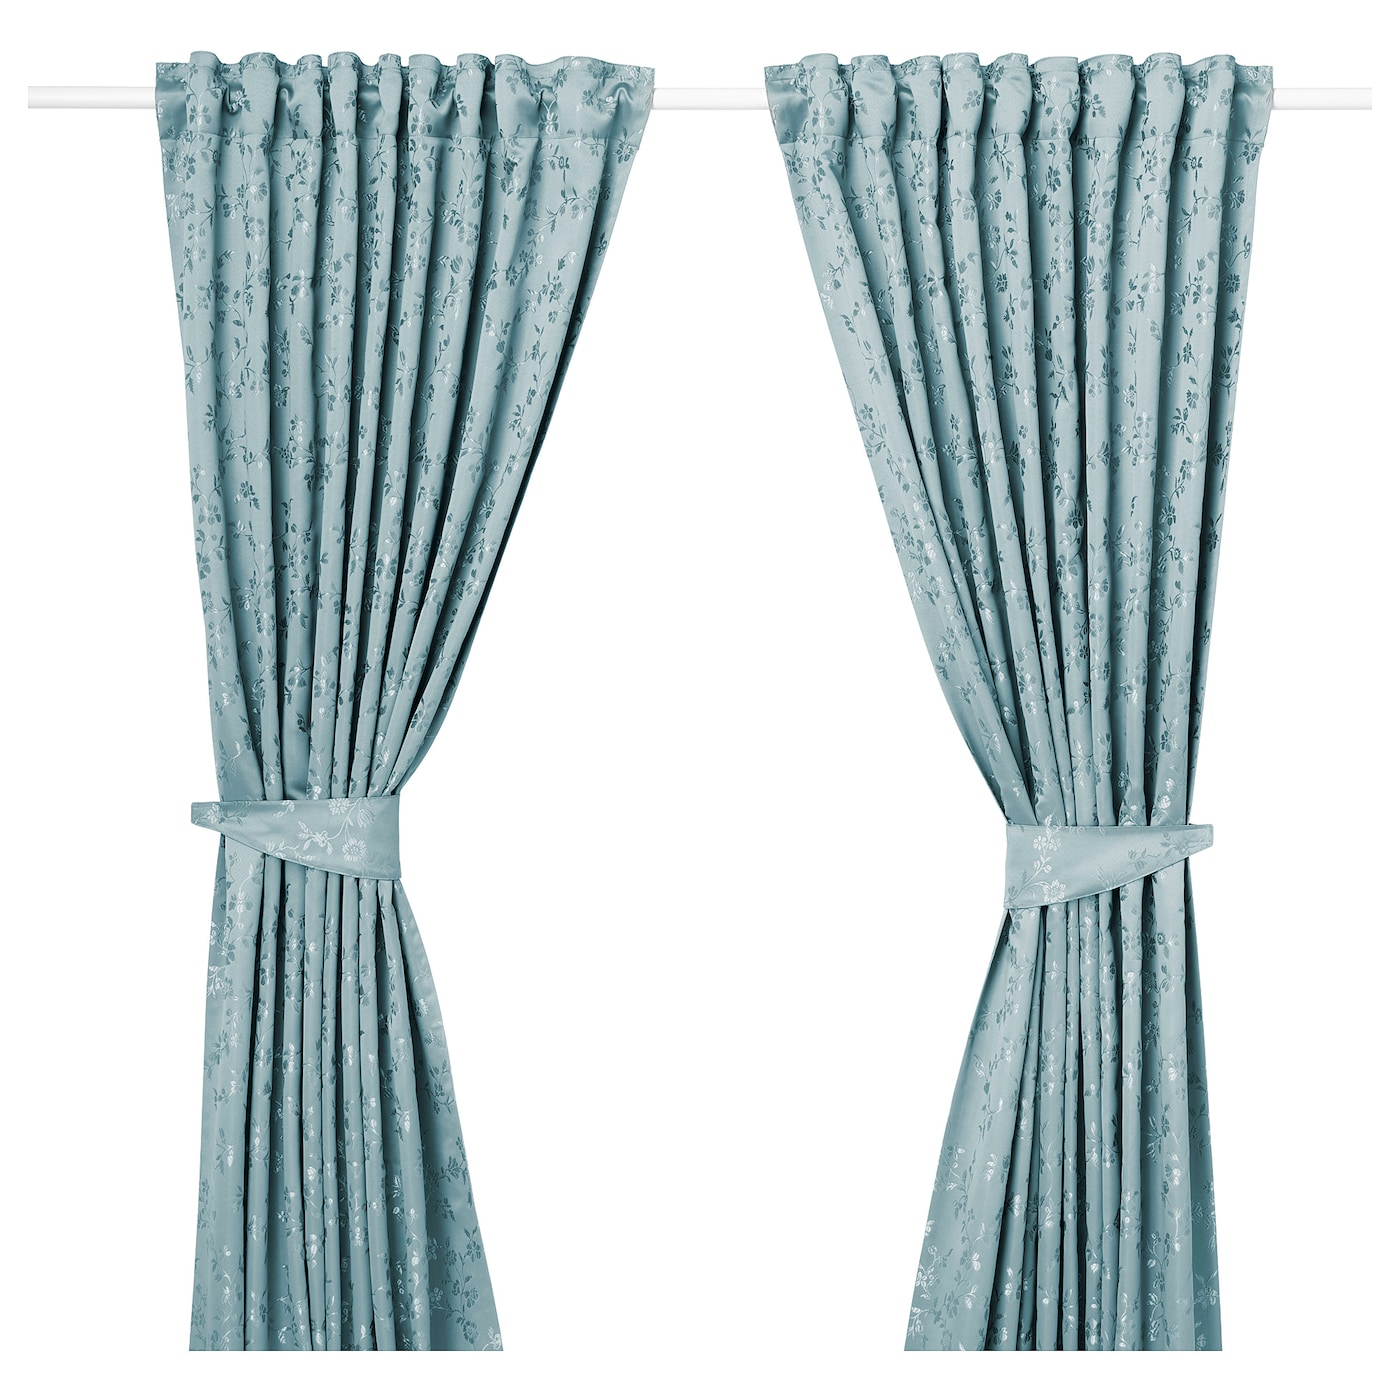 IKEA LISABRITT curtains with tie-backs, 1 pair